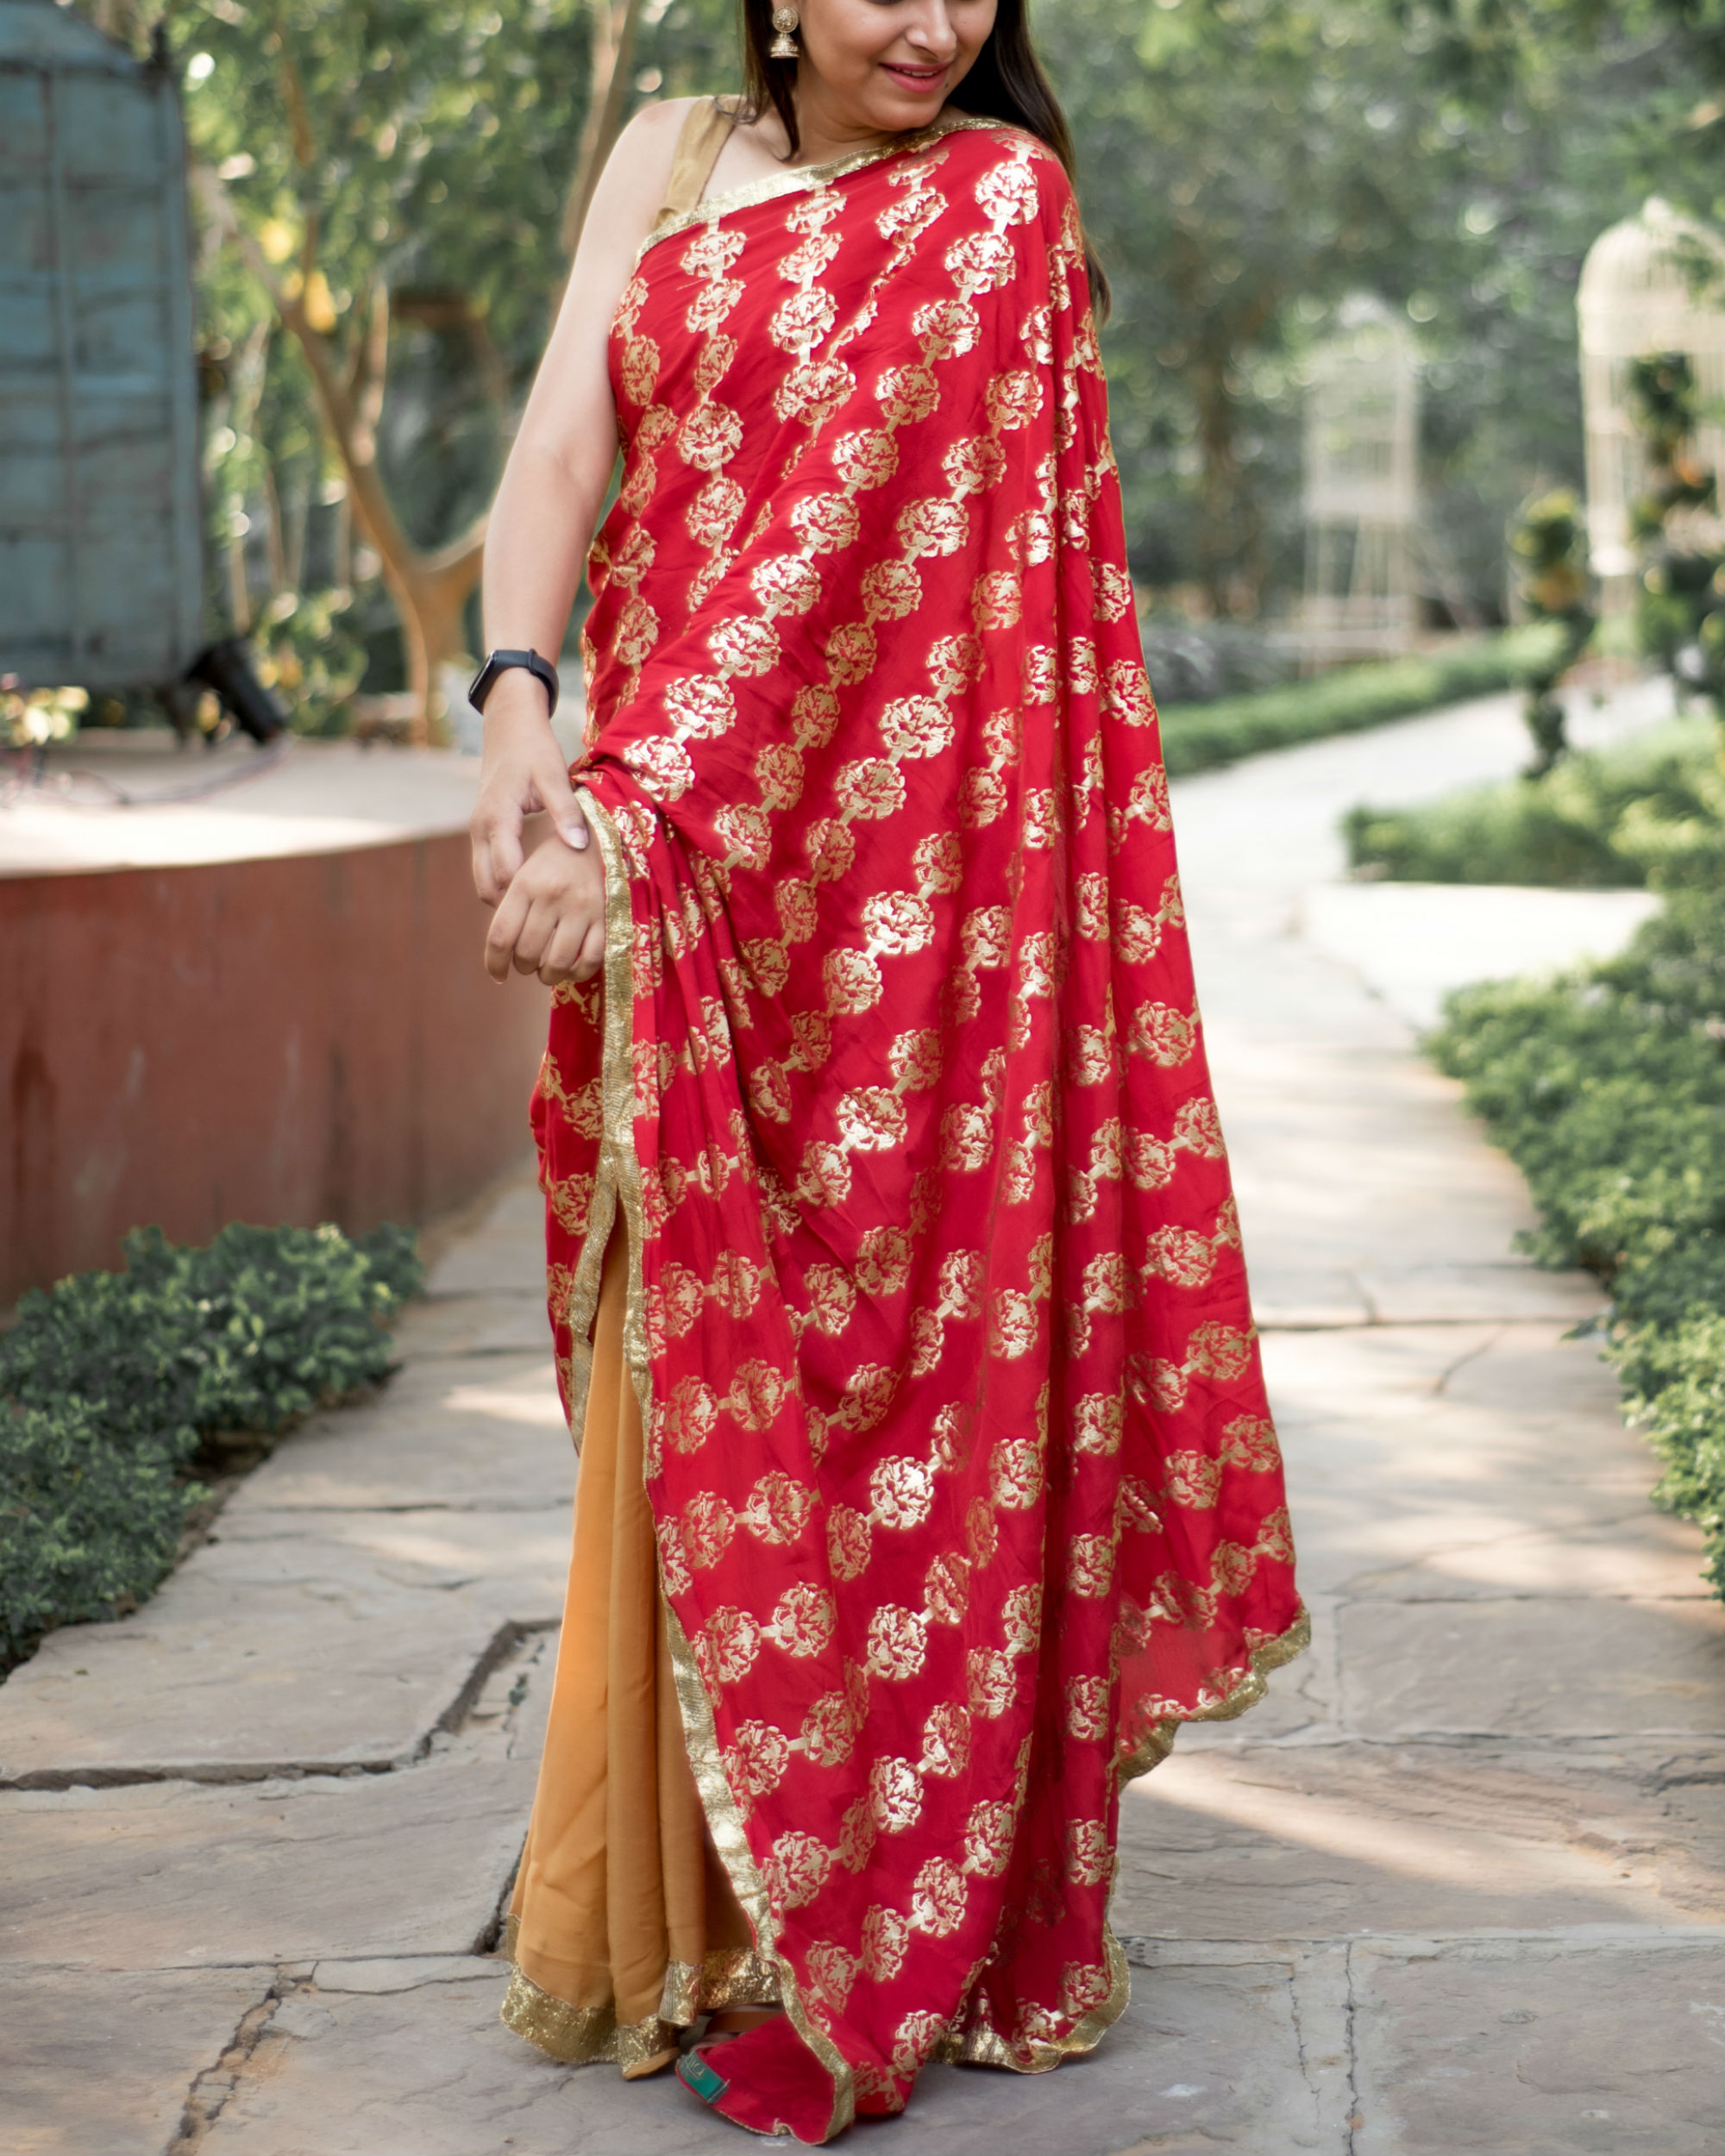 Red and brown printed sari